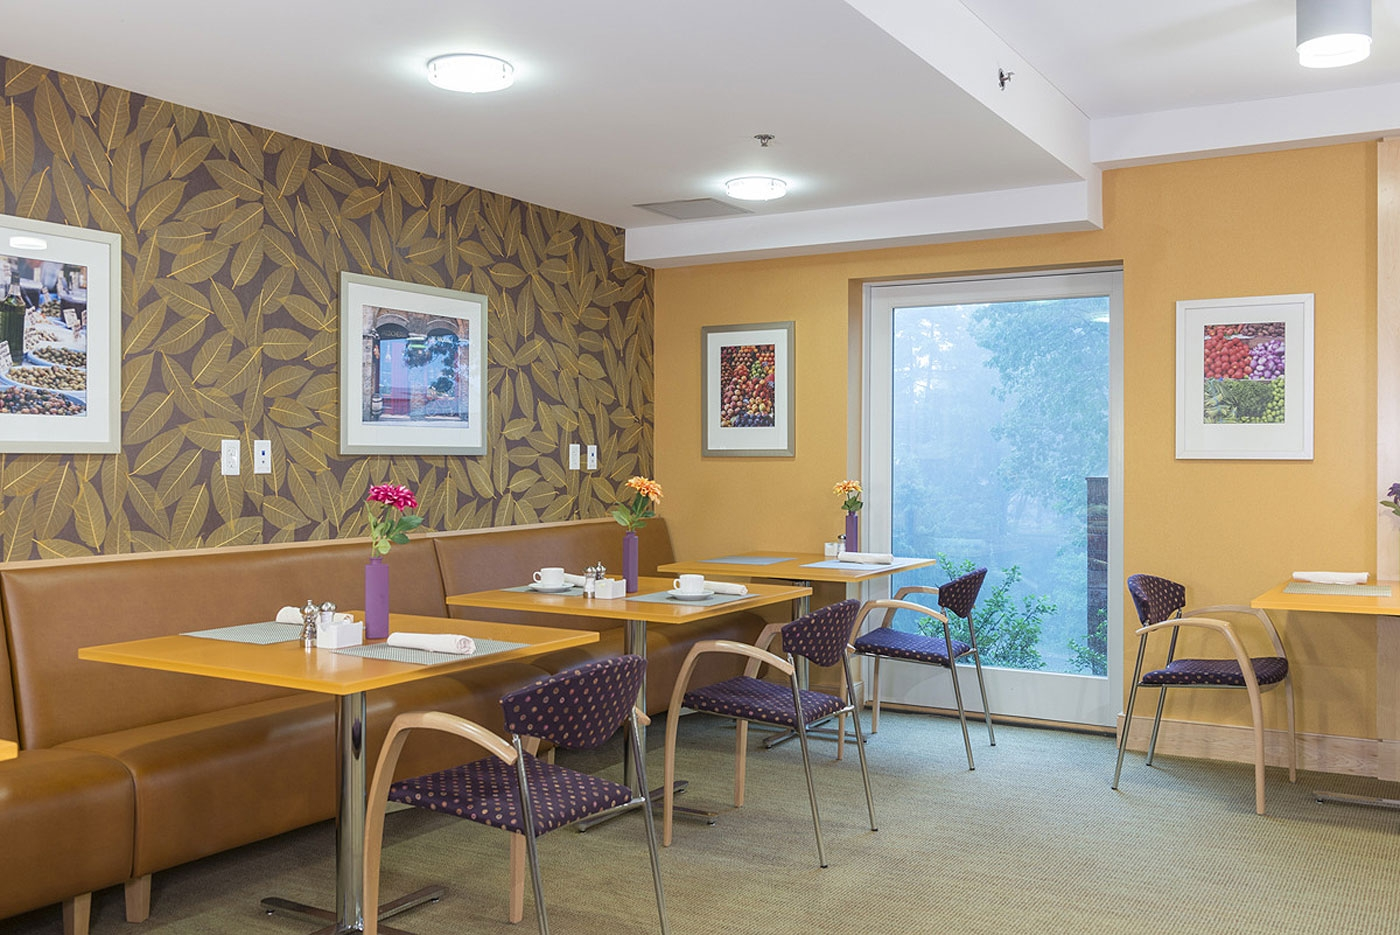 Cozy corner for smaller group socializing in a CCRC community dining area